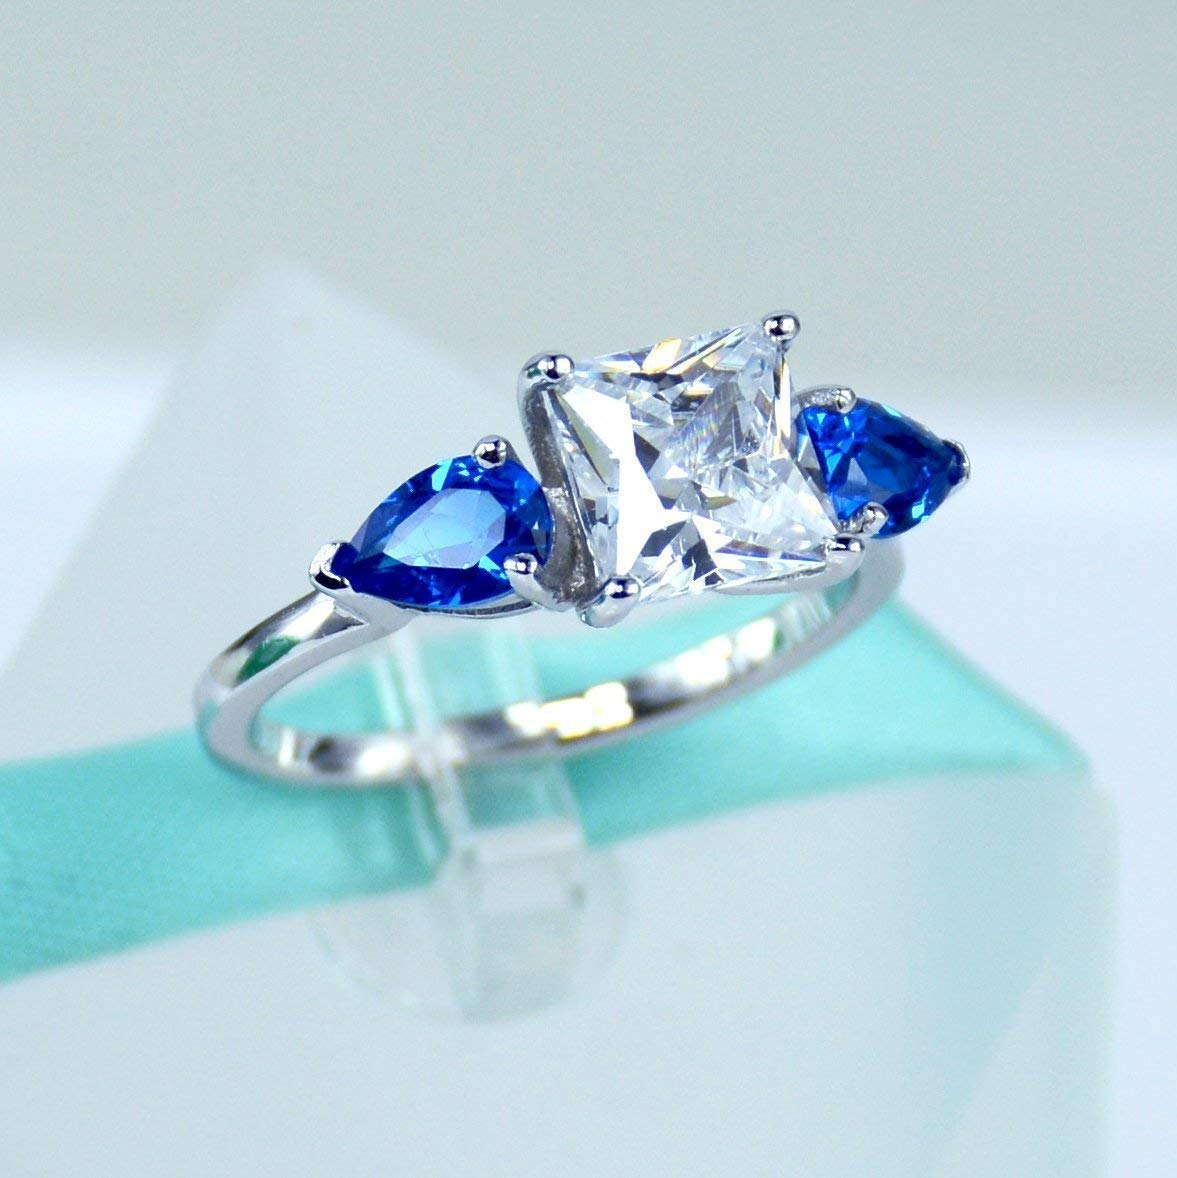 2Carat Princess Cut Simulated Diamond, Blue Pear, 925 Sterling Silver Solitaire Ring, Cubic Zirconia Stone, Daily Ring, Engagement Ring, Promise Ring, Women